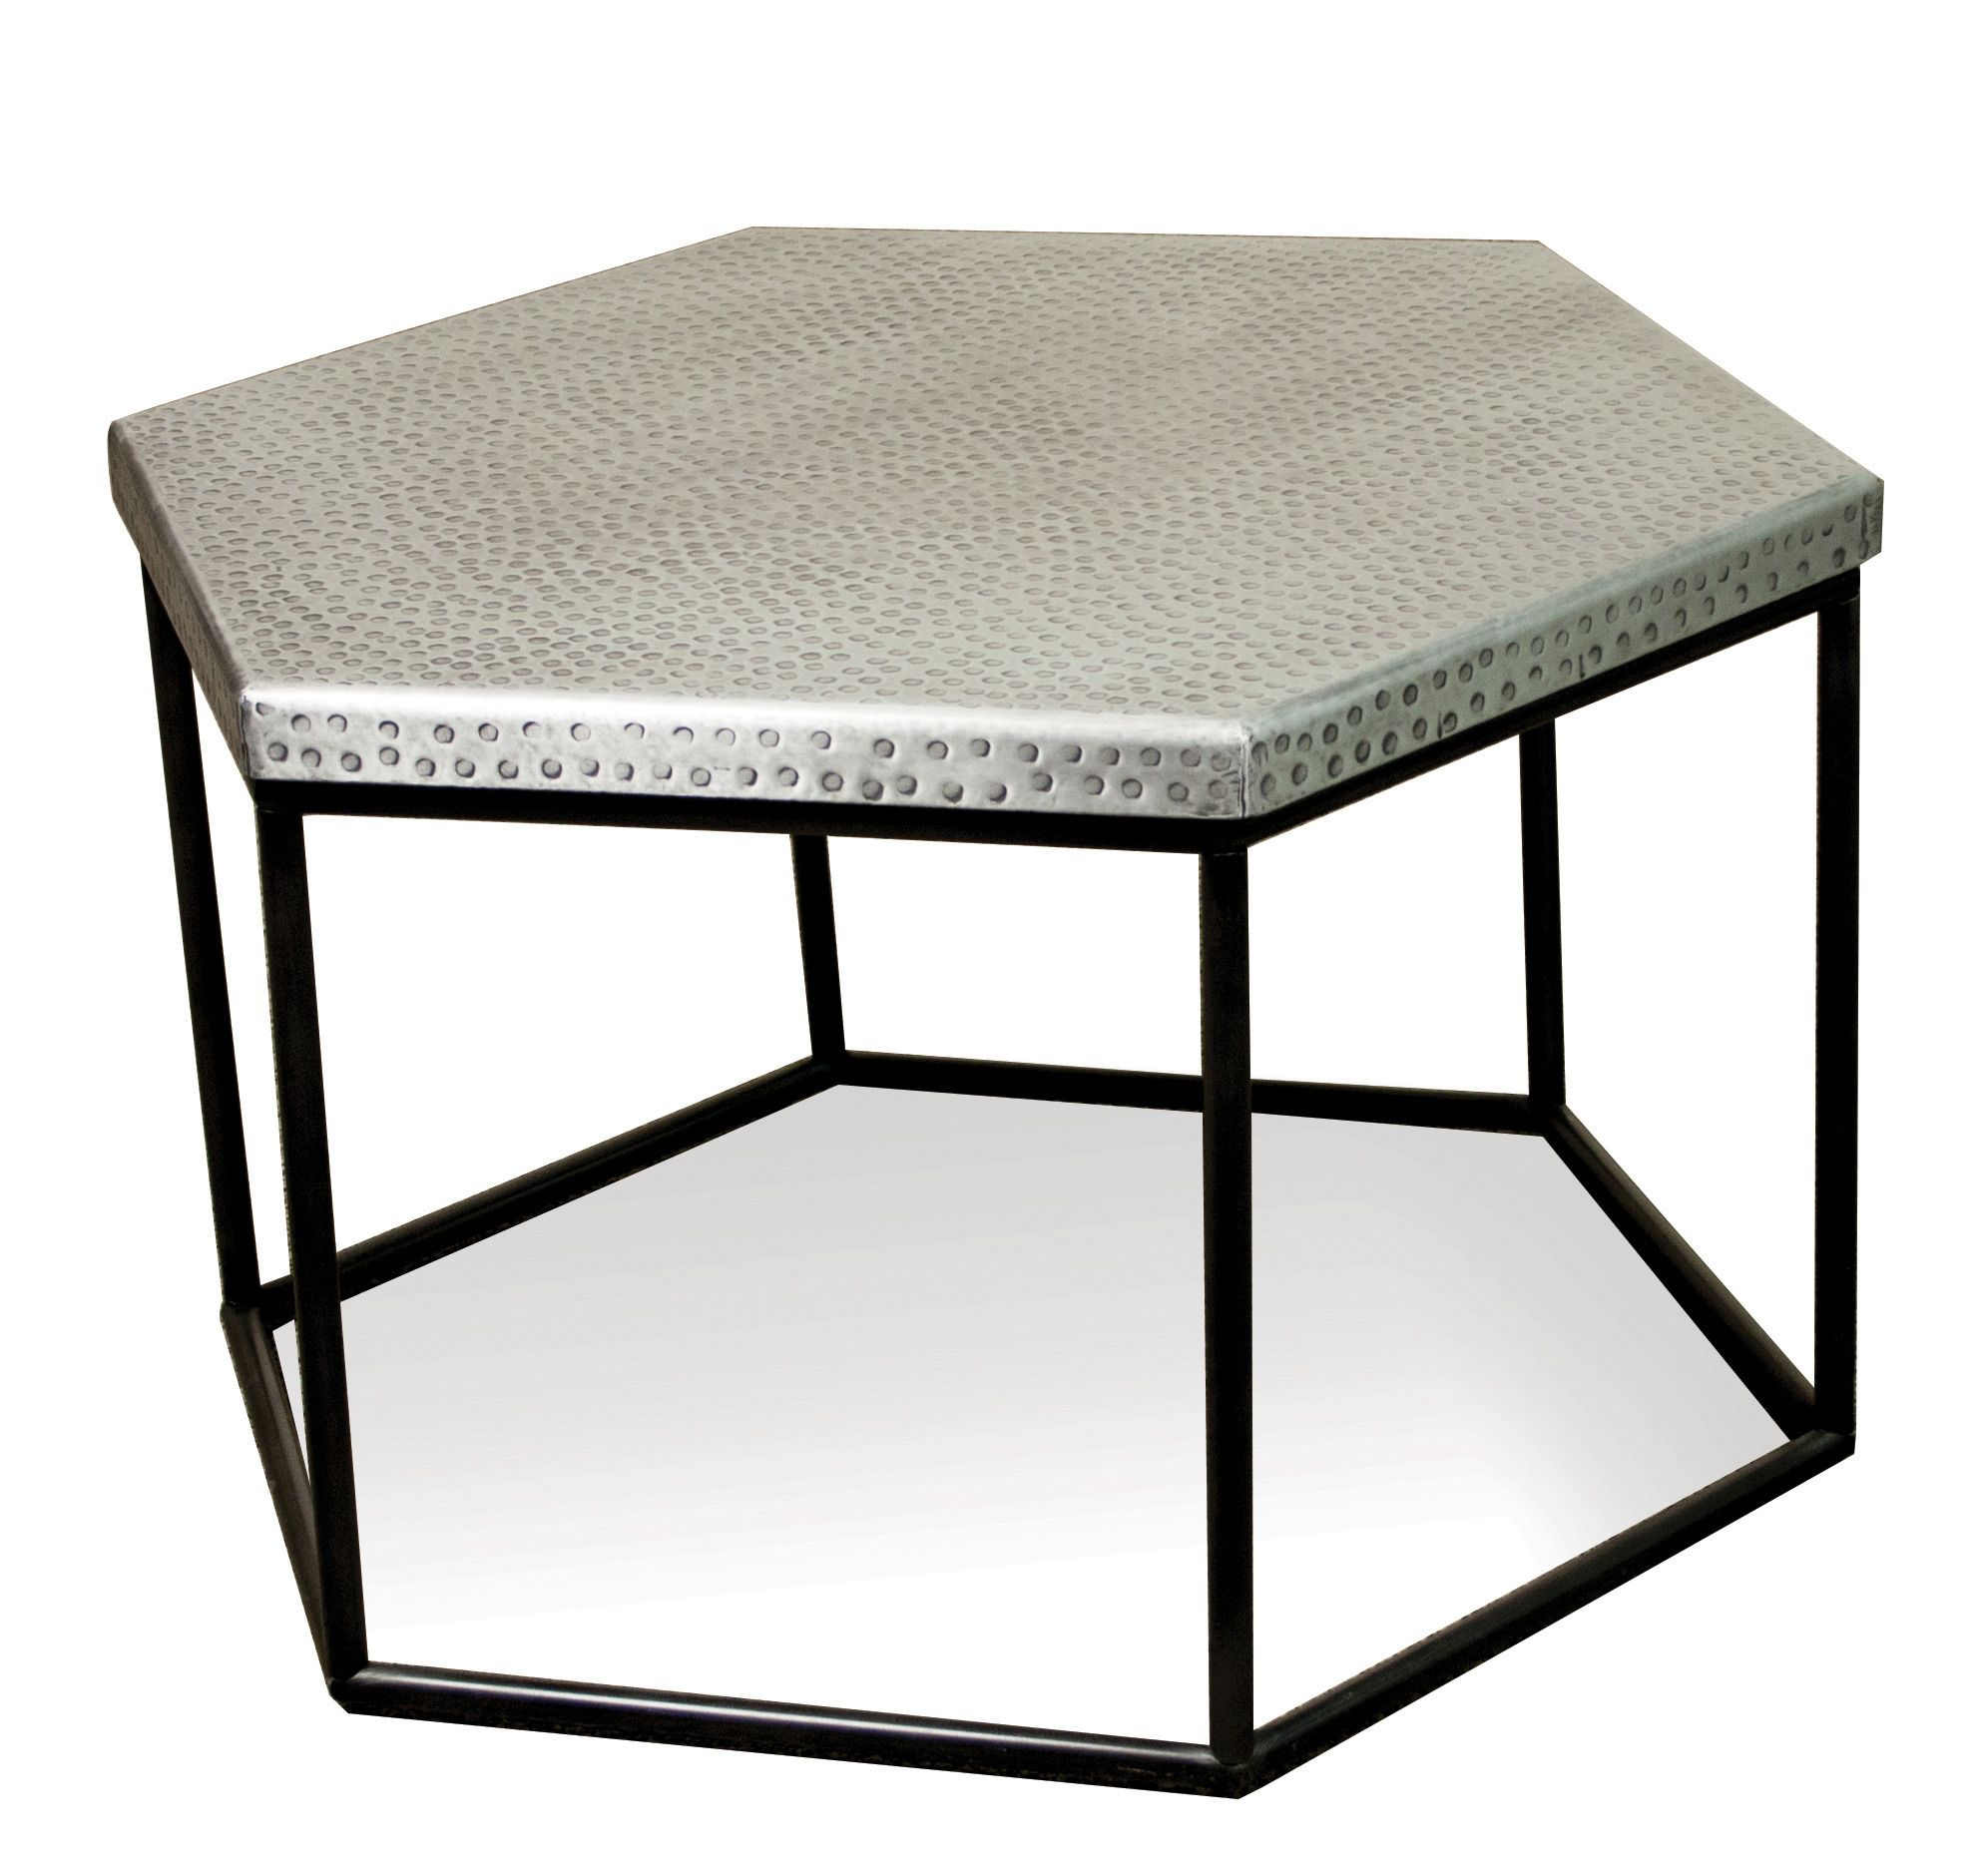 Lyric hexagon cocktail table by riverside home gallery stores lyric hexagon cocktail table by riverside home gallery stores geotapseo Images